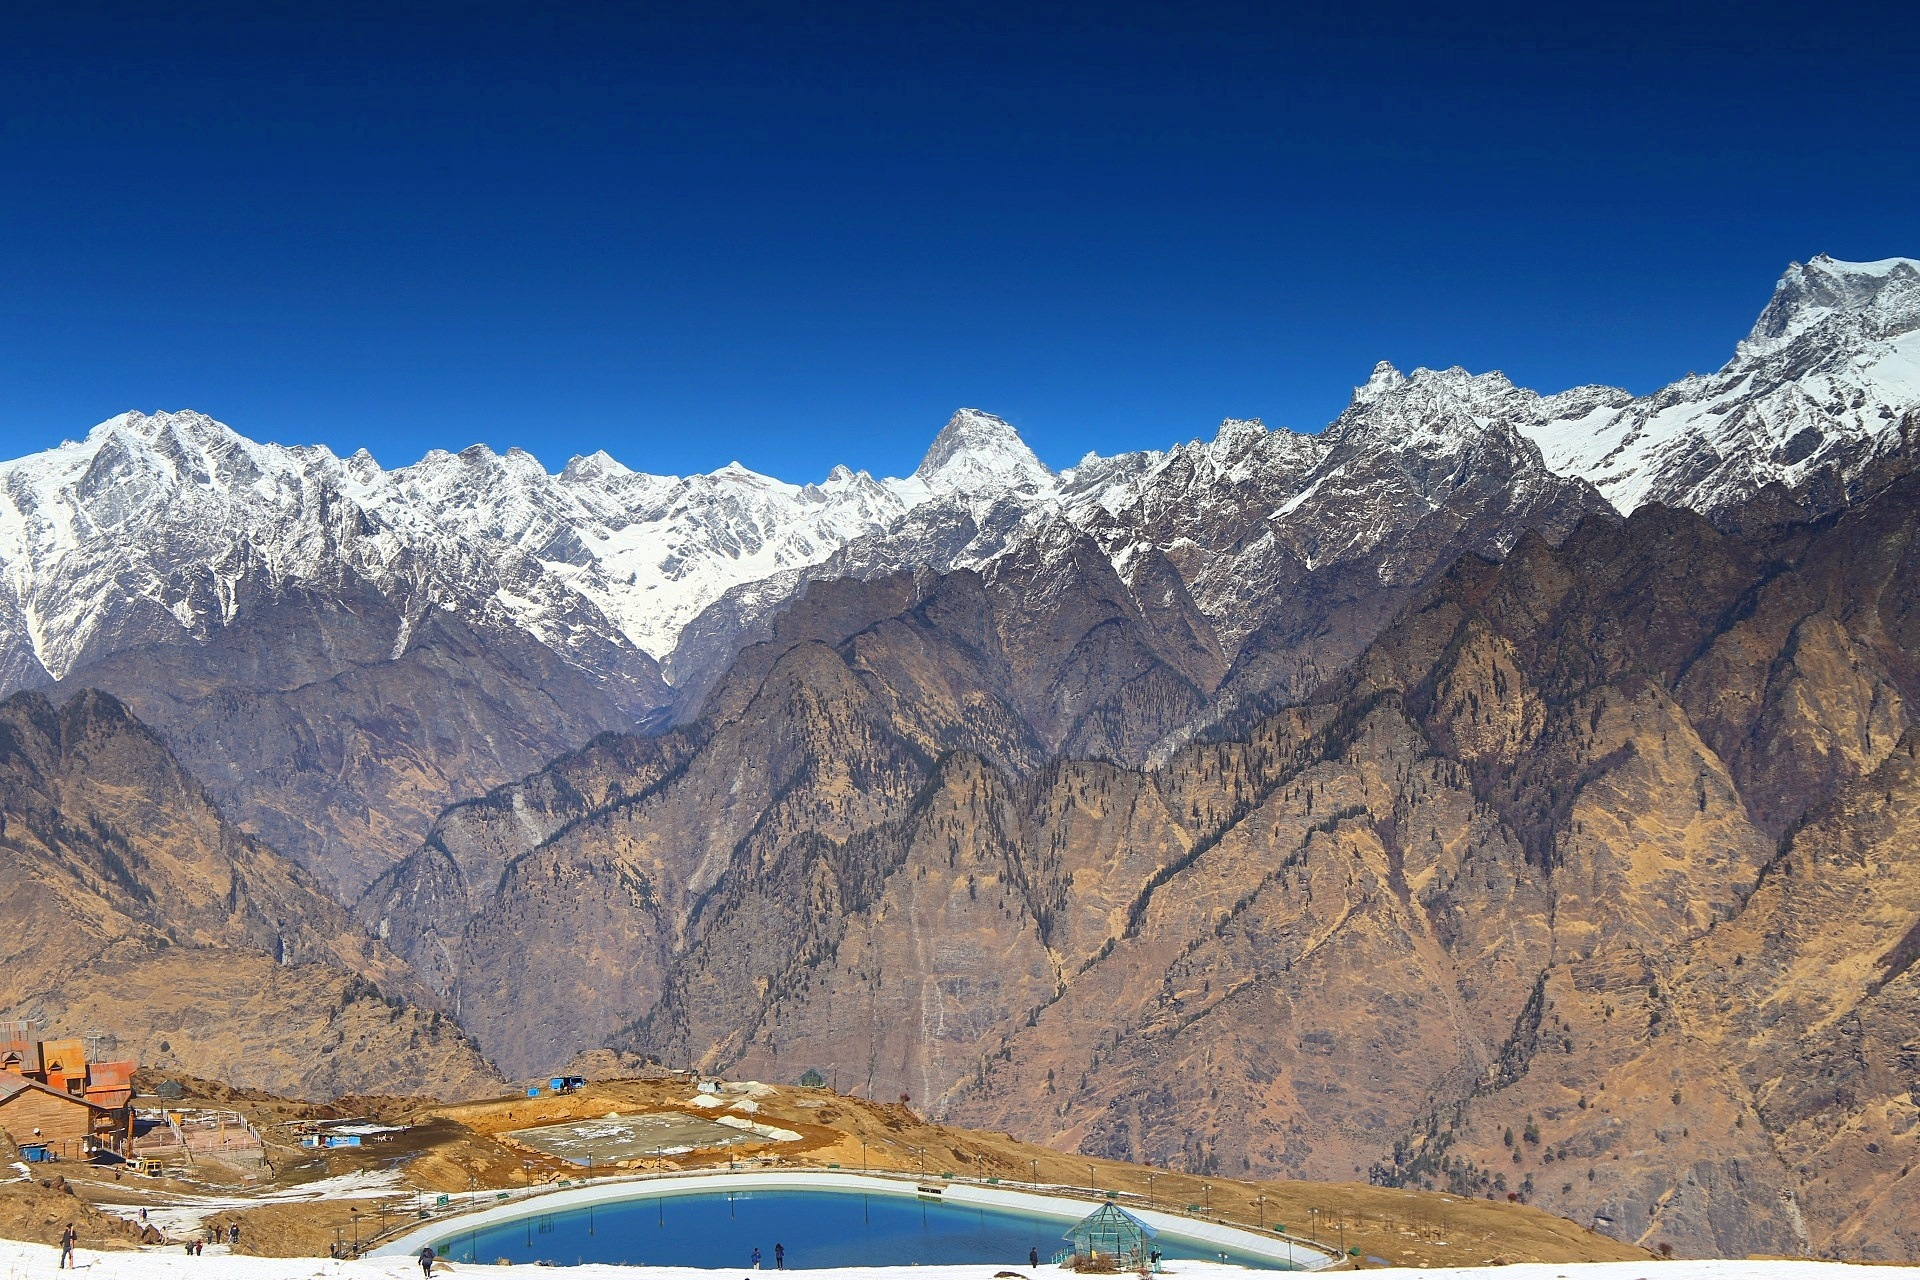 The Mighty Himalayas  by abhitrups2002